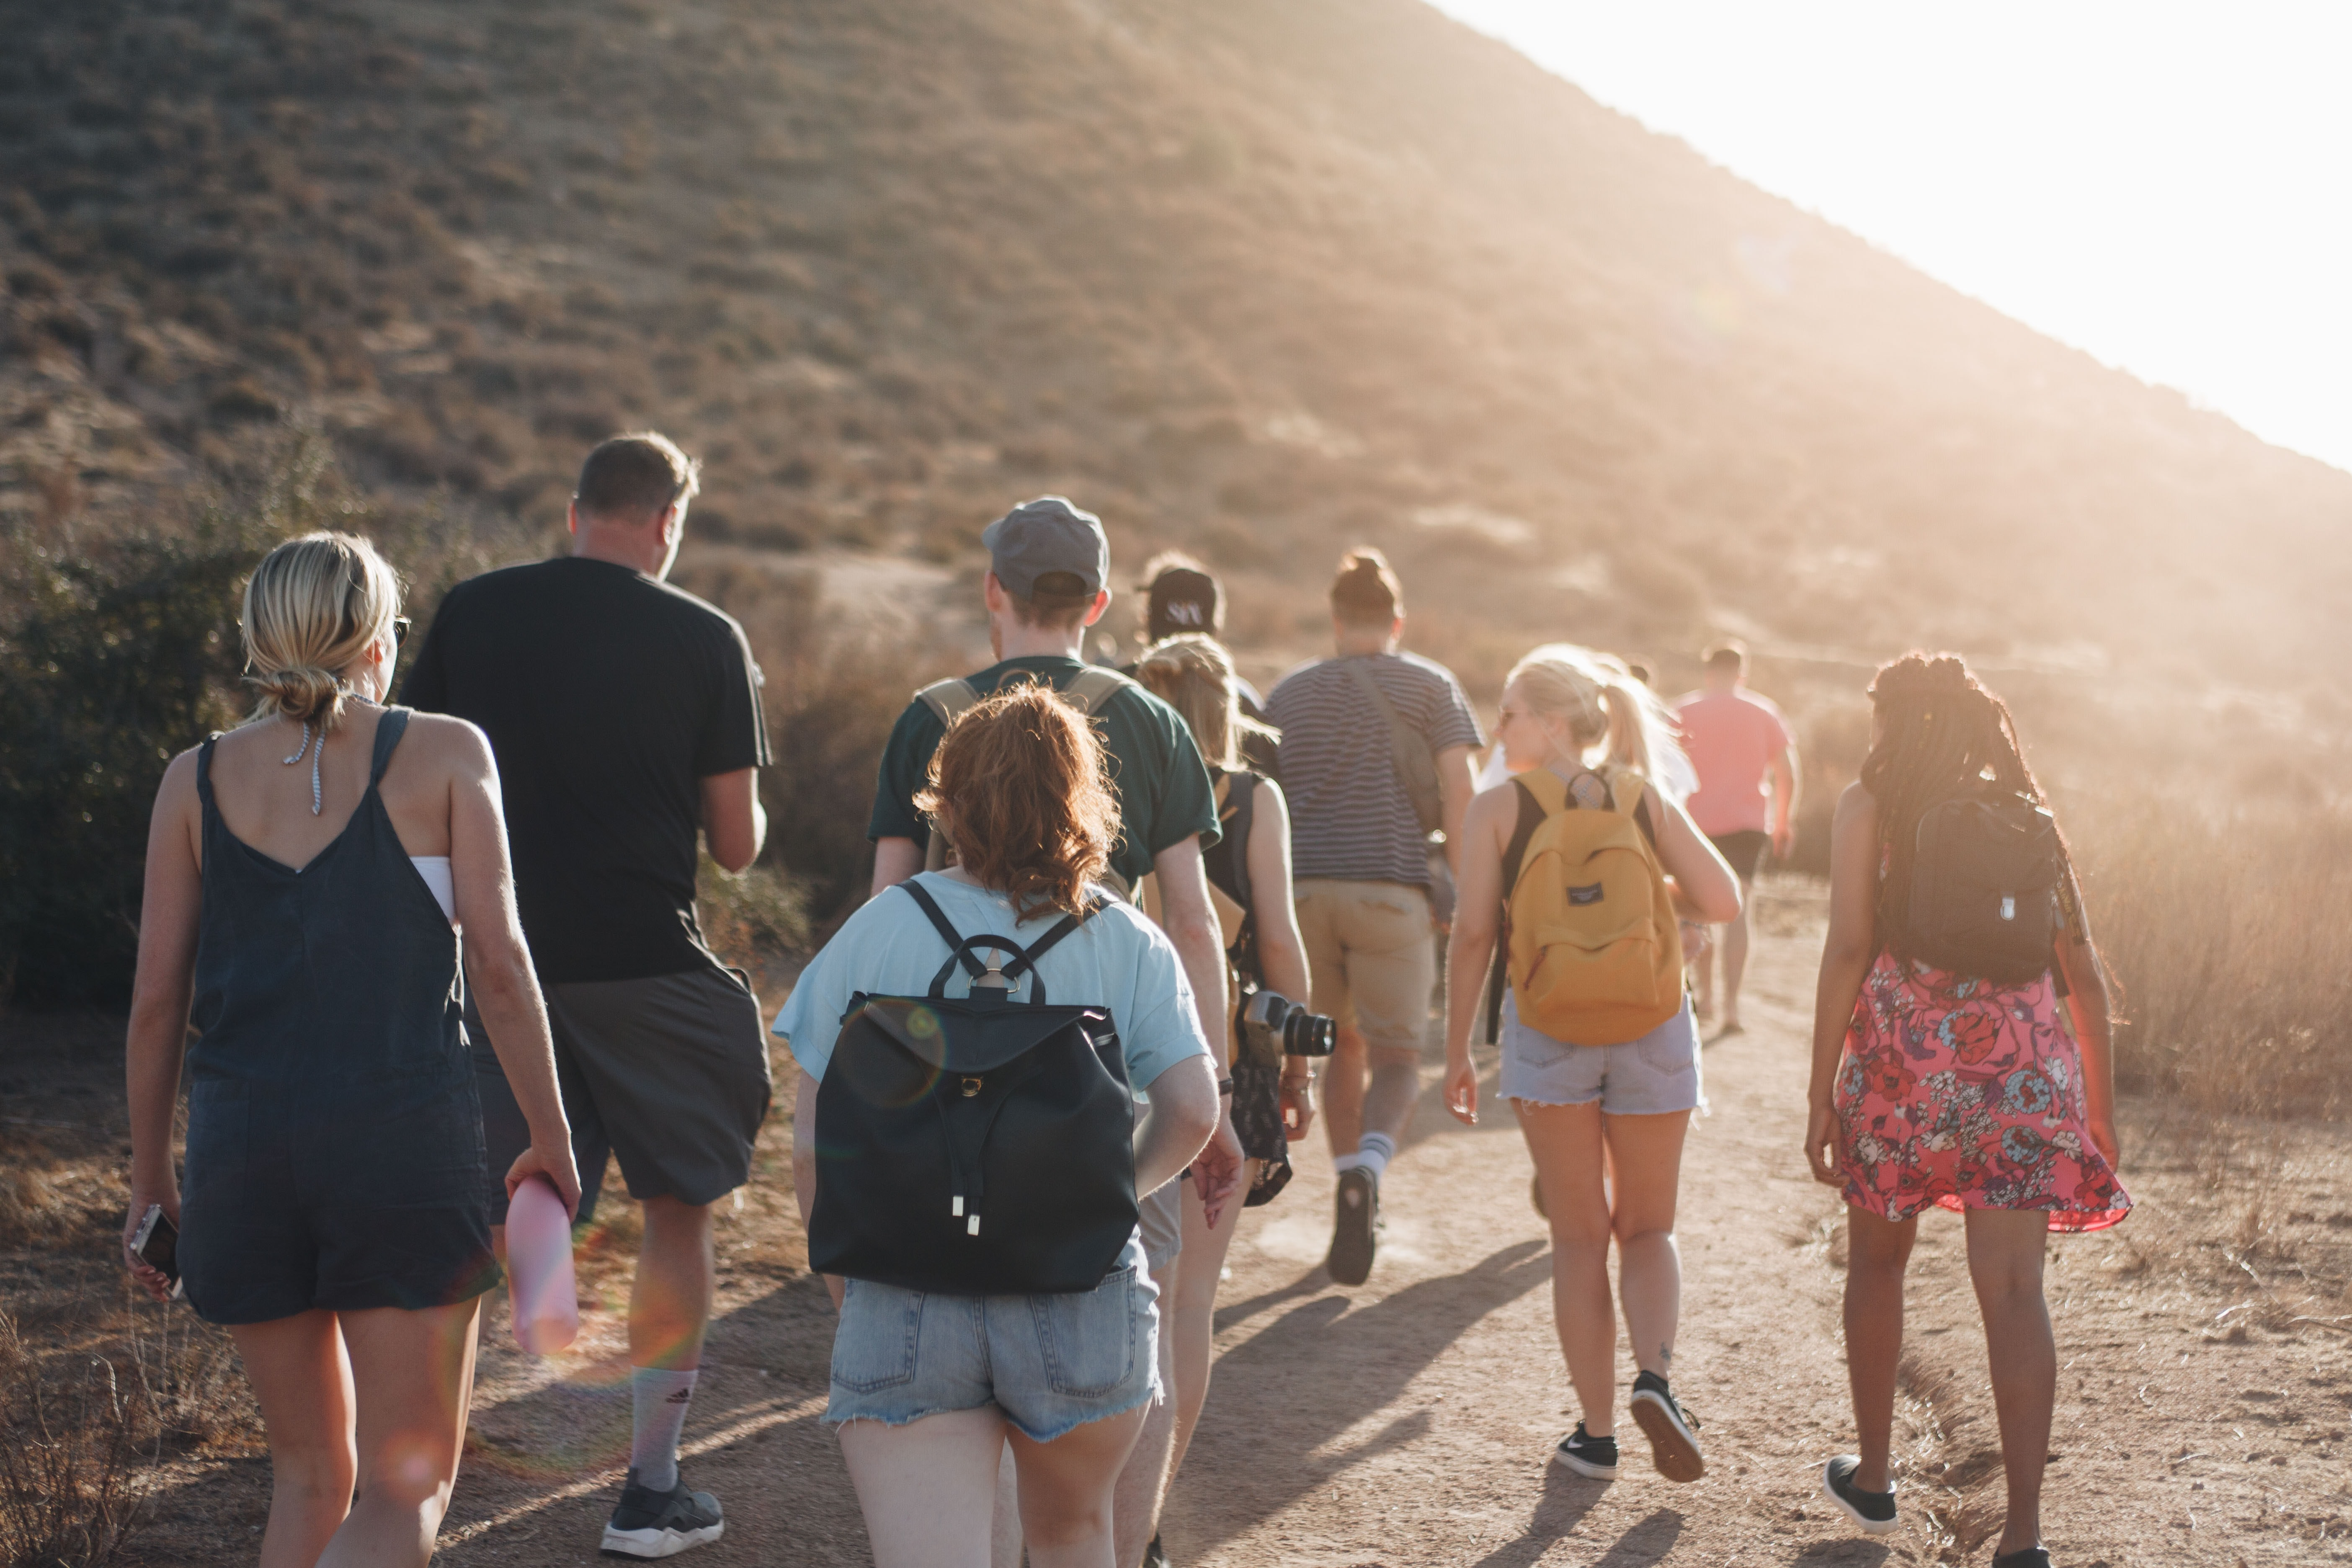 New research reveals incentive travel desires